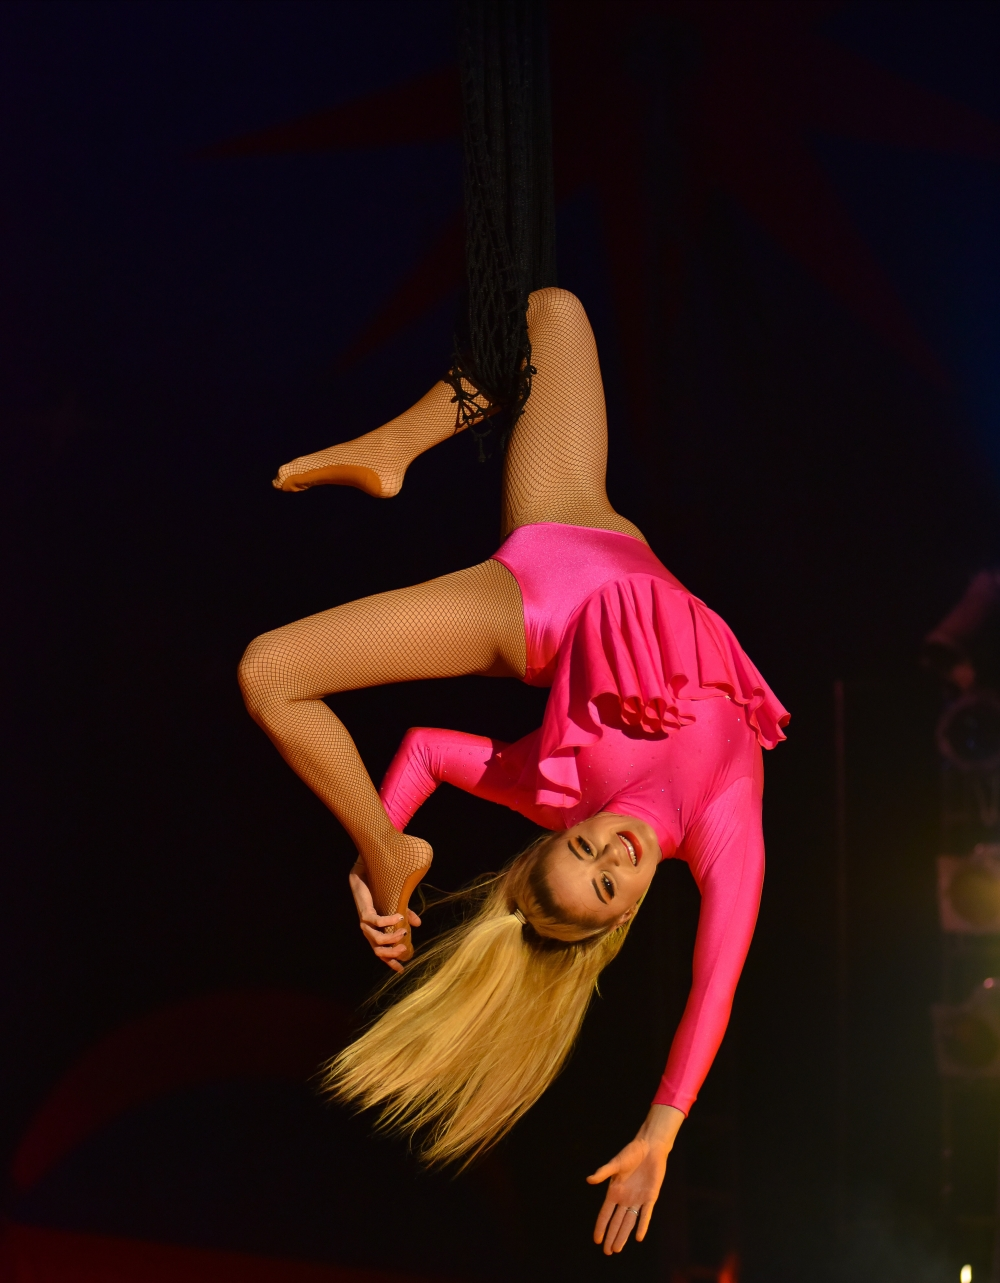 trapeze-girl-ellie-mae-at-santus-circus.jpg